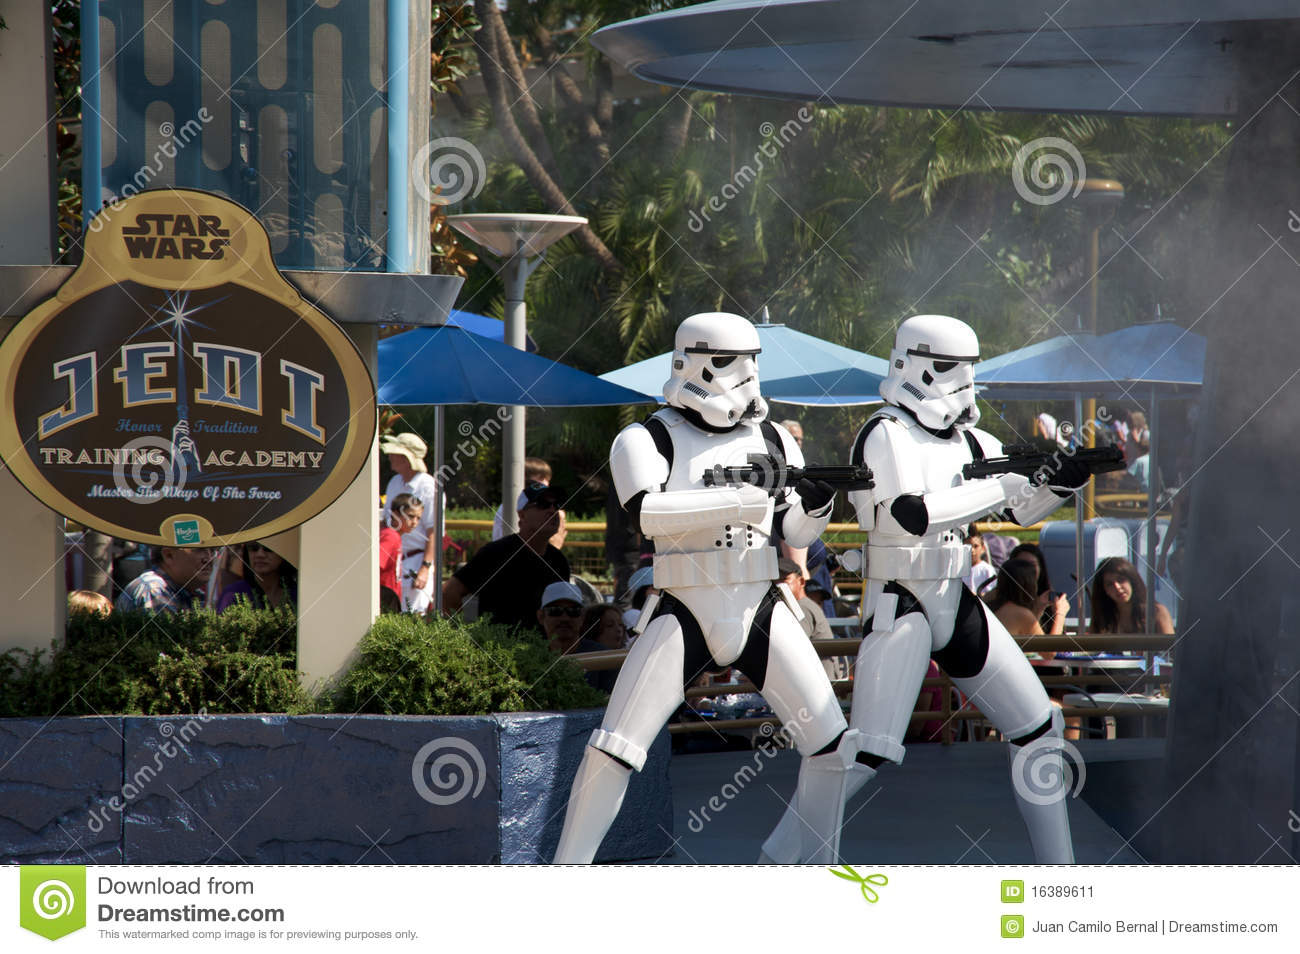 Star Wars en Disneylandya